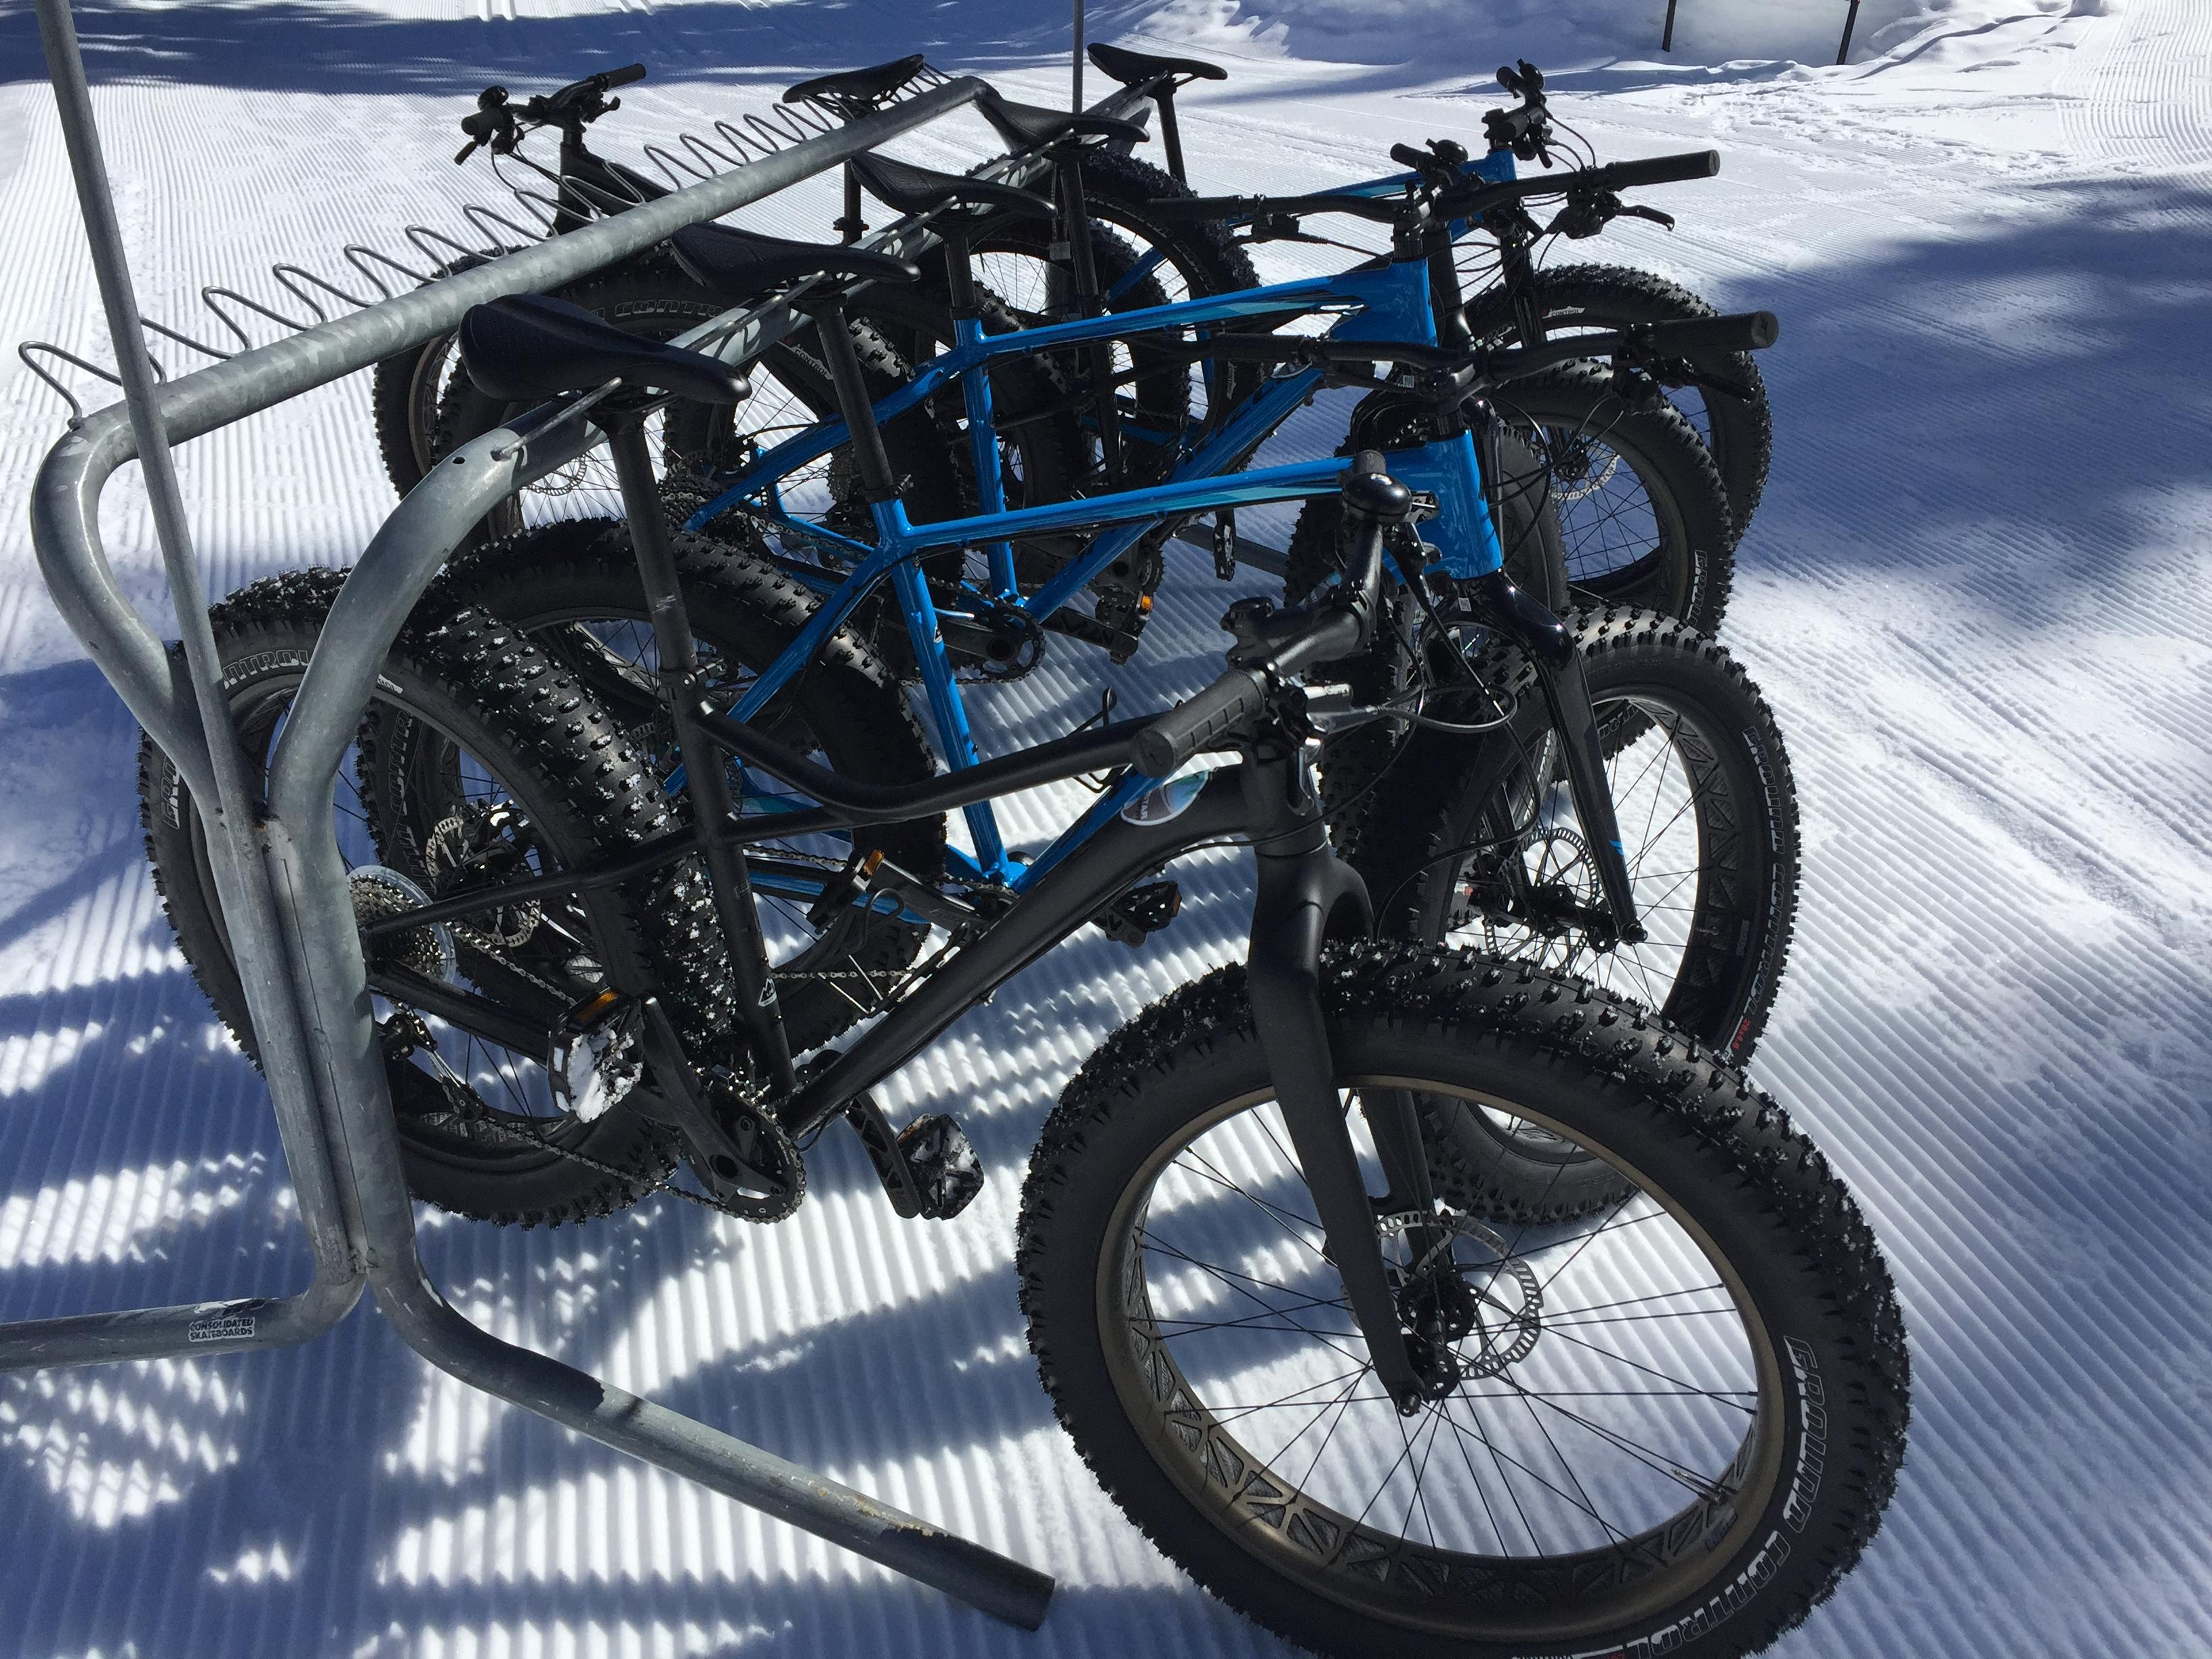 Northstar resort in North Tahoe rents out fat tire bikes at its Cross Country Ski Center.